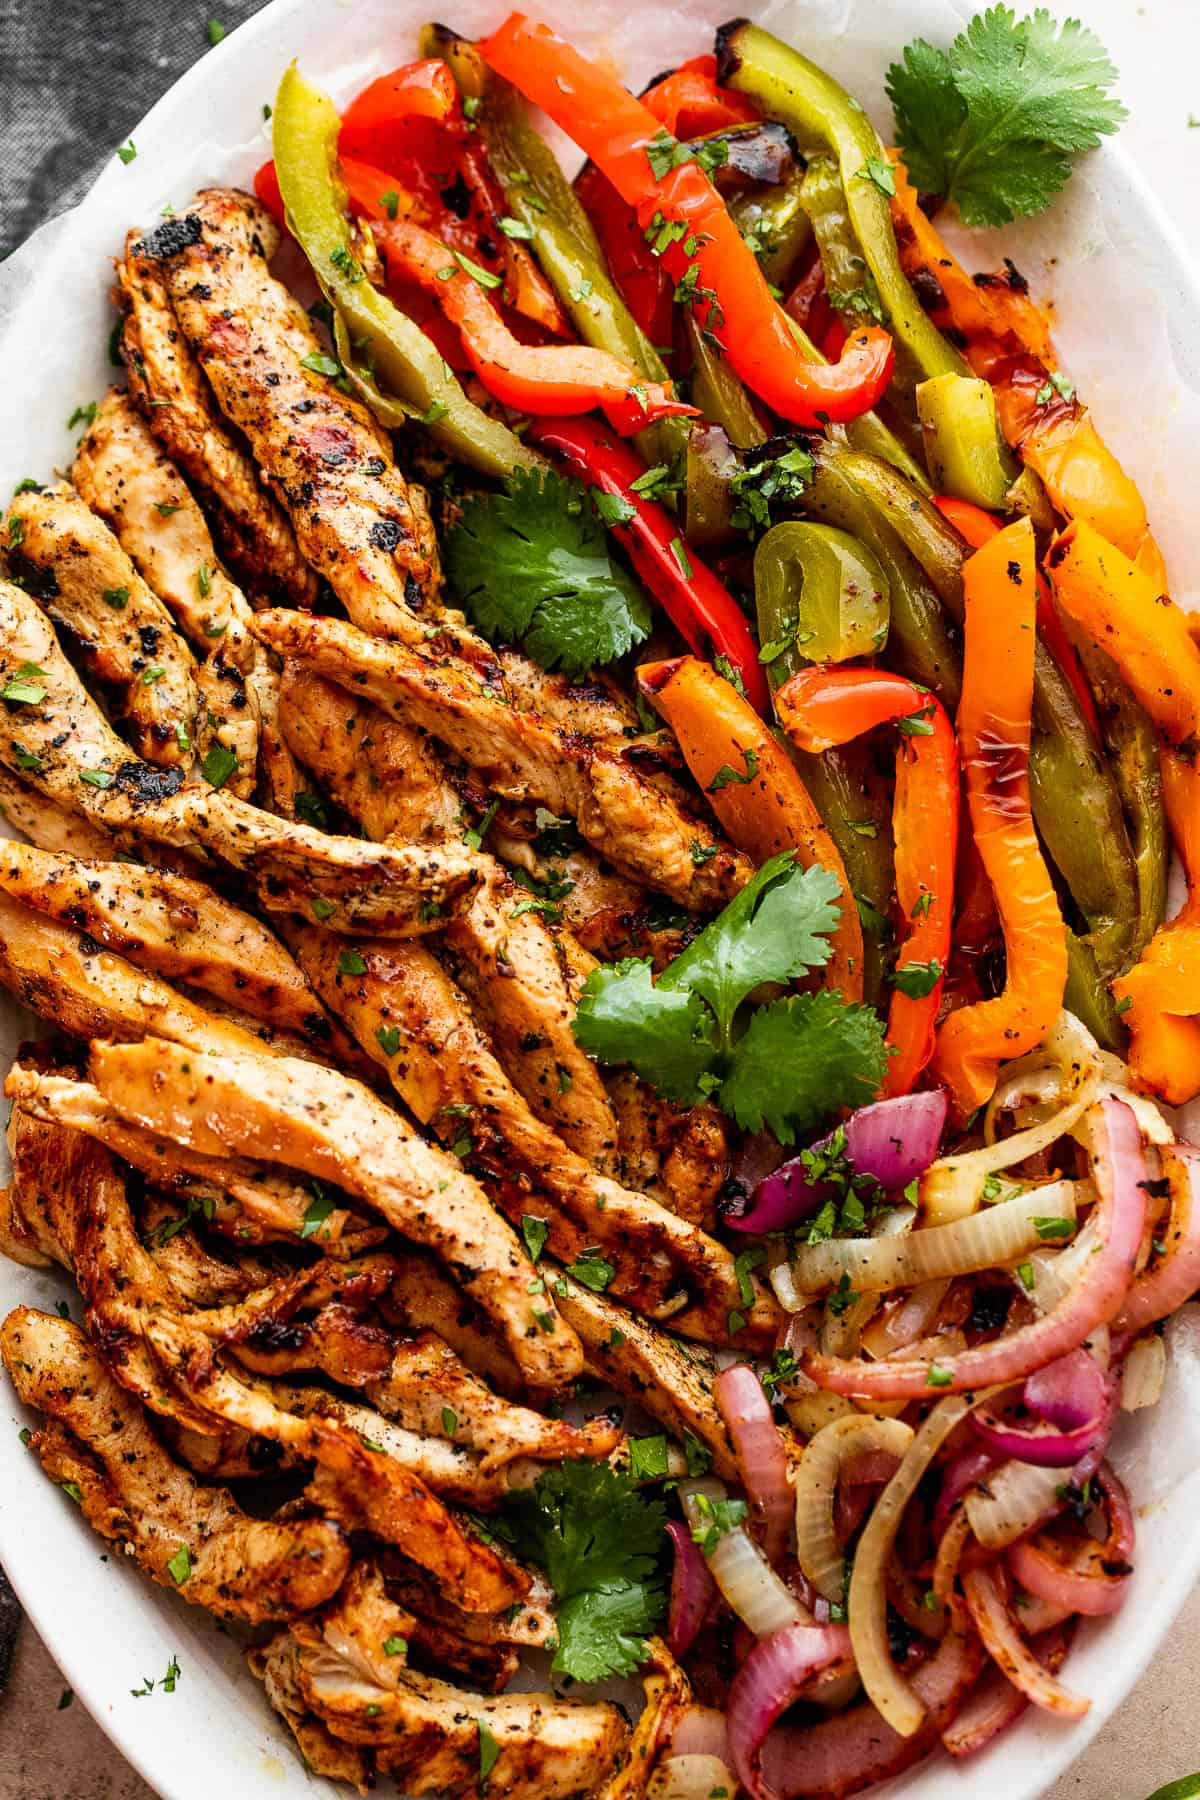 grilled chicken strips, colorful bell pepper strips, and onions on a serving plate garnished with cilantro leaves